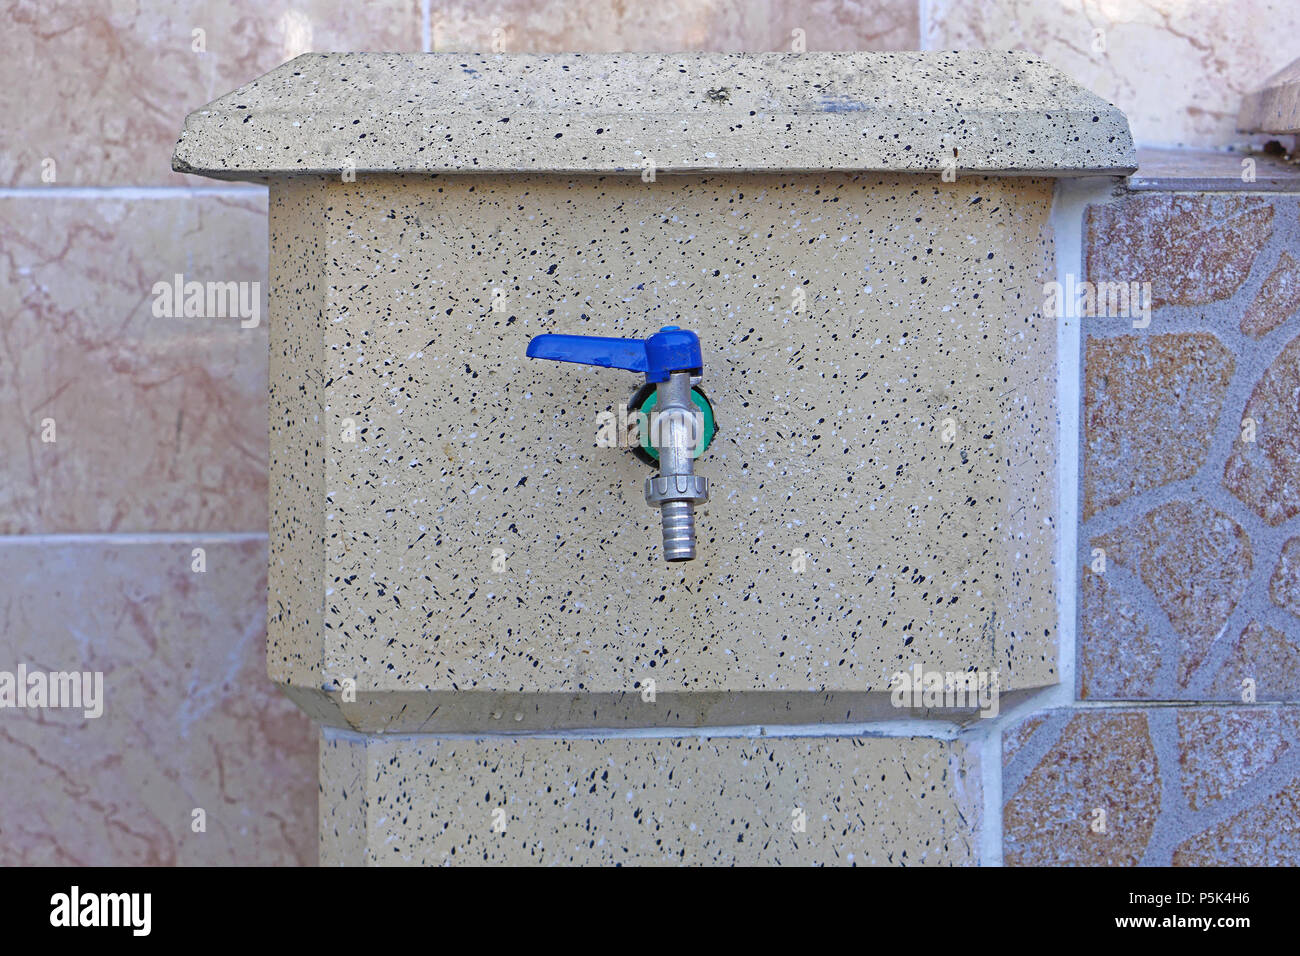 Water faucet with blue handle and hose attachment - Stock Image